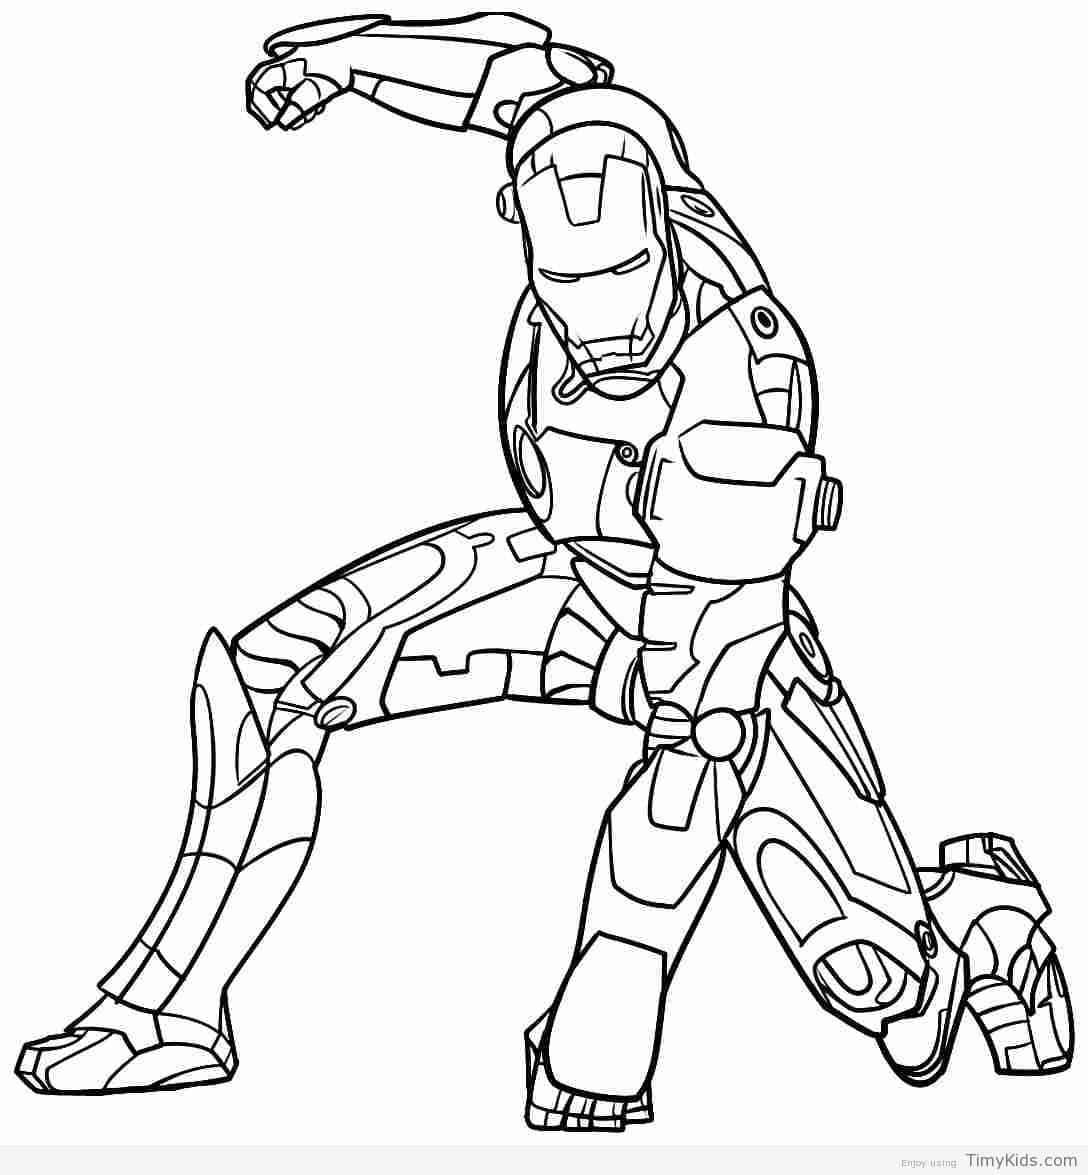 easy iron man coloring pages iron man to color for kids iron man kids coloring pages coloring pages iron easy man